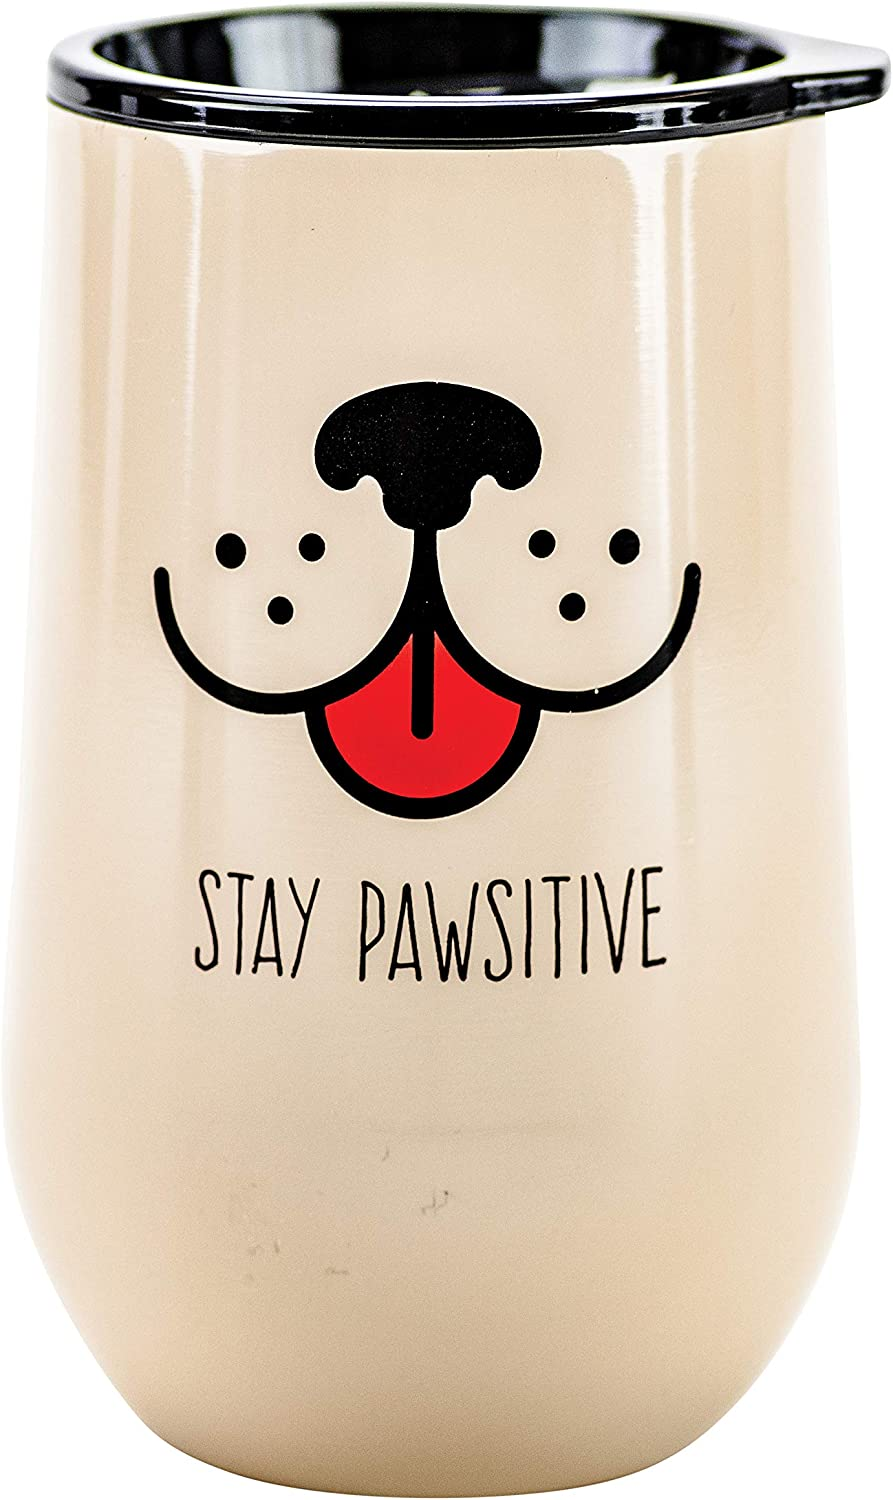 Boston Warehouse Stainless Steel Stemless Wine Glass with Lid, 16-Ounce, Stay Pawsitive